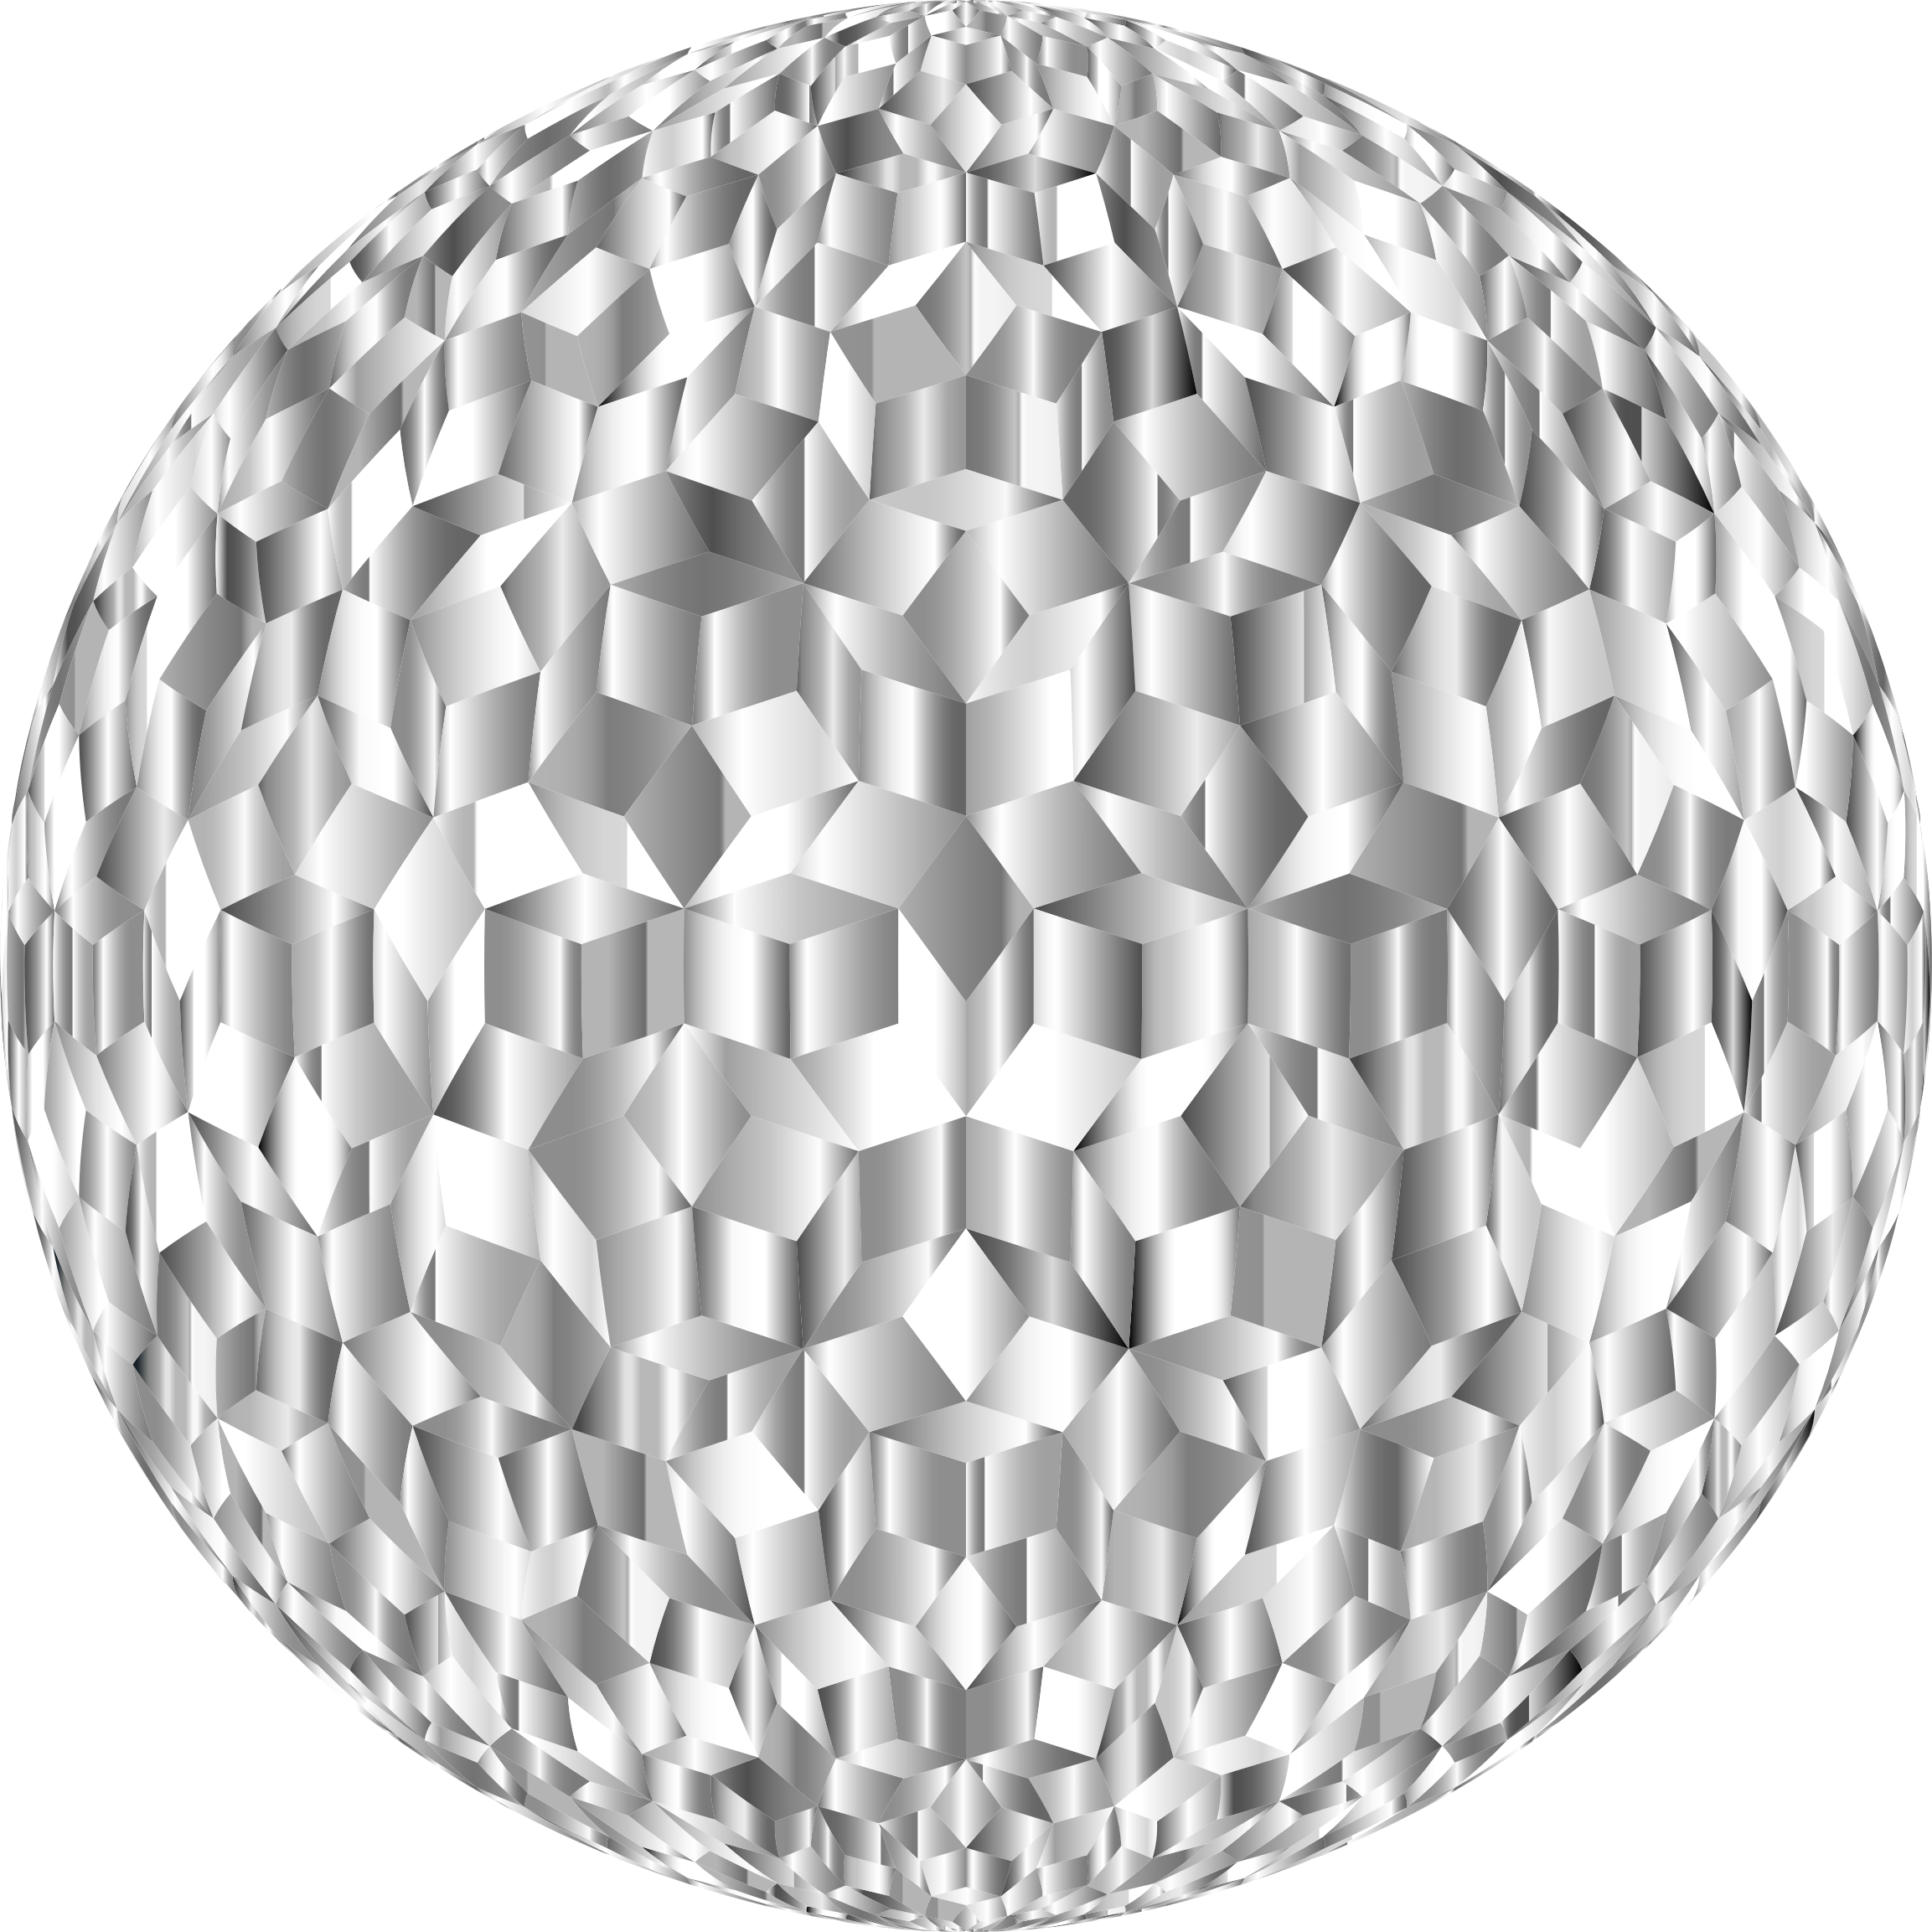 Prismatic Penrose Sphere Variation 6 by GDJ